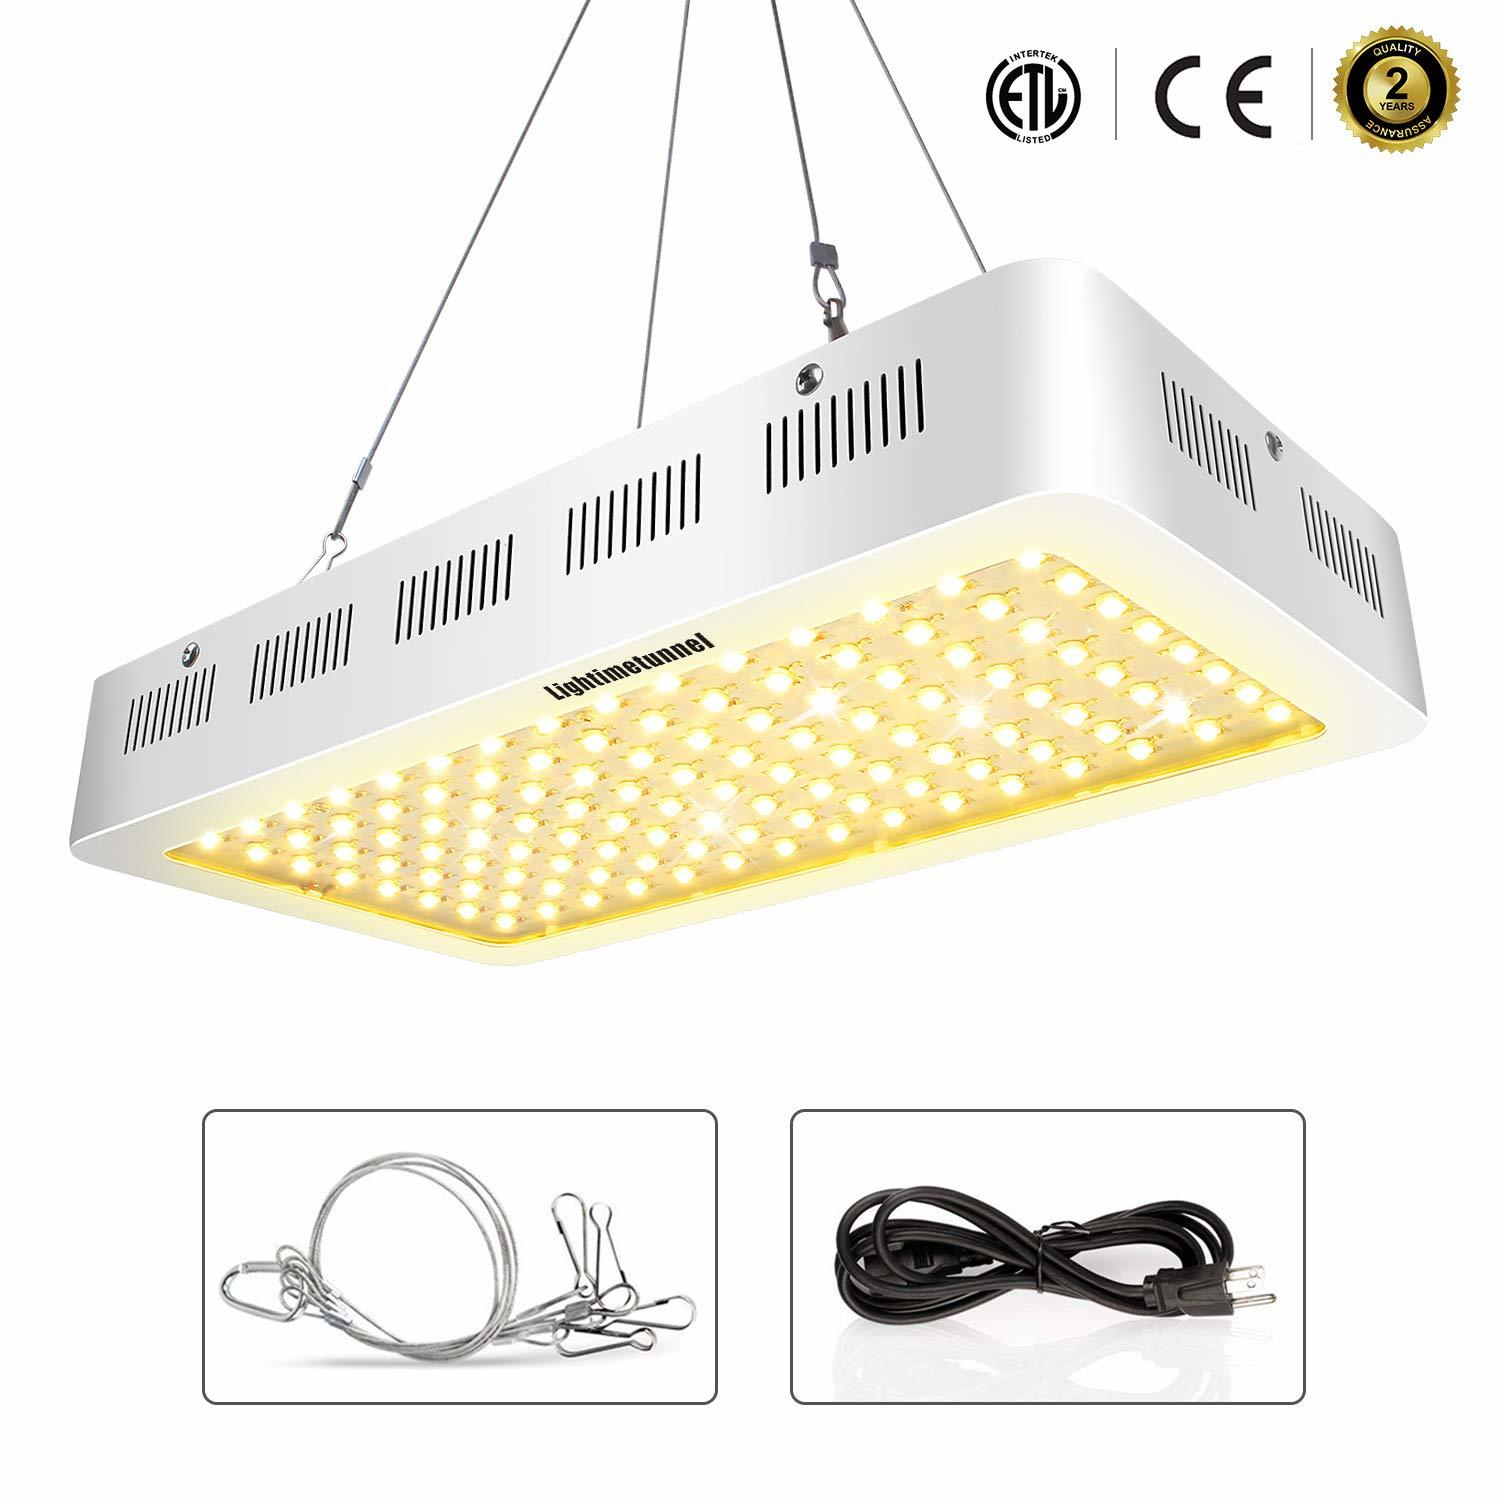 Lightmetunnel 1200W Powerfull Fullspectrum LED Grow Light